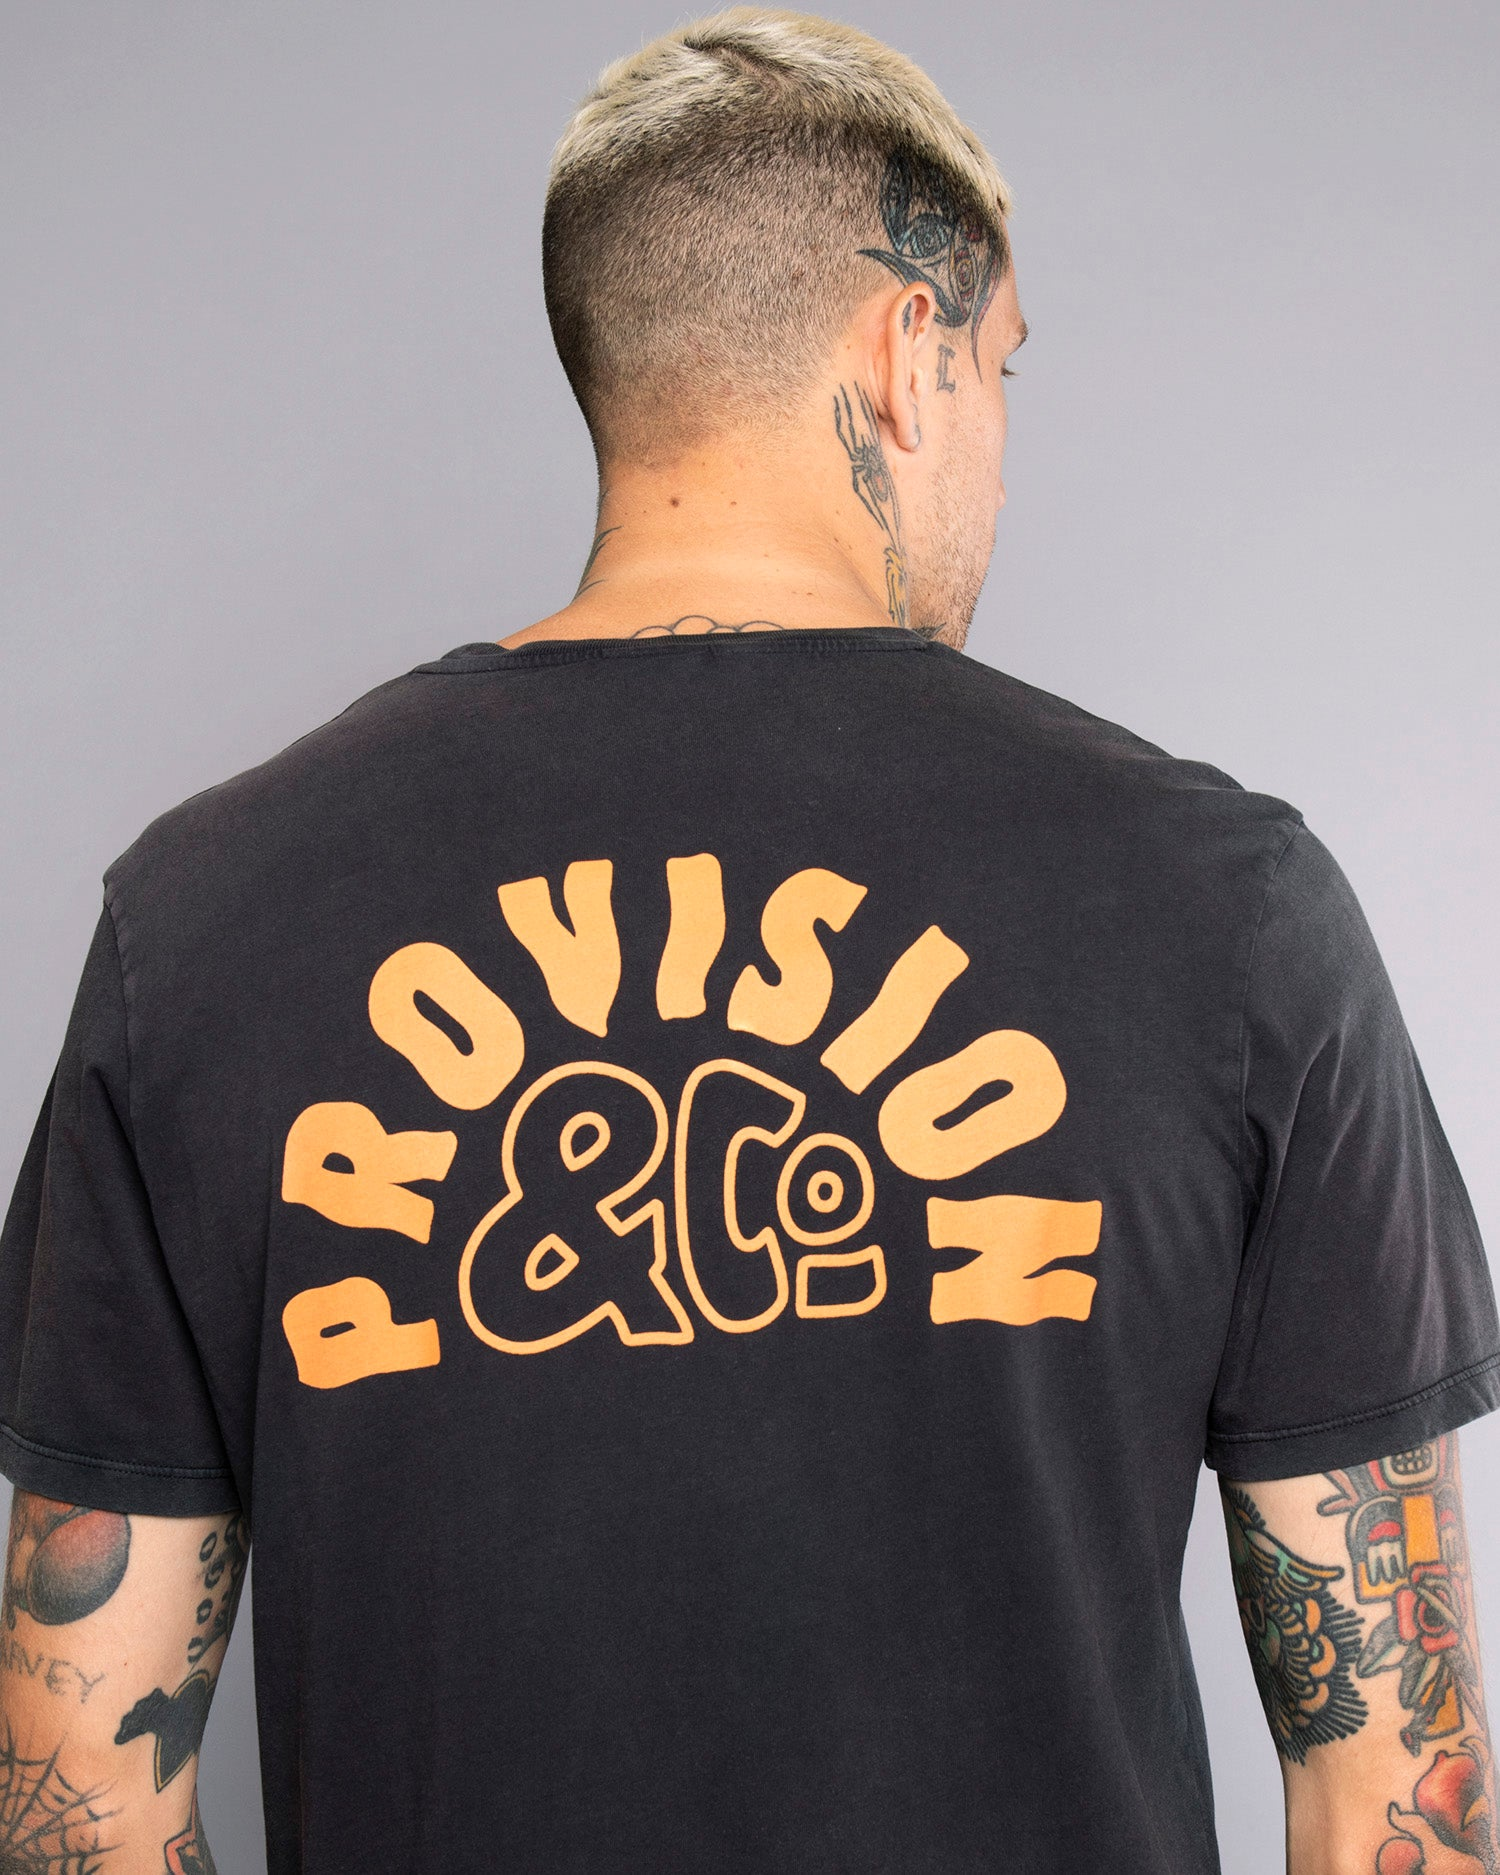 Provision Sunrise Mens Black Tshirt